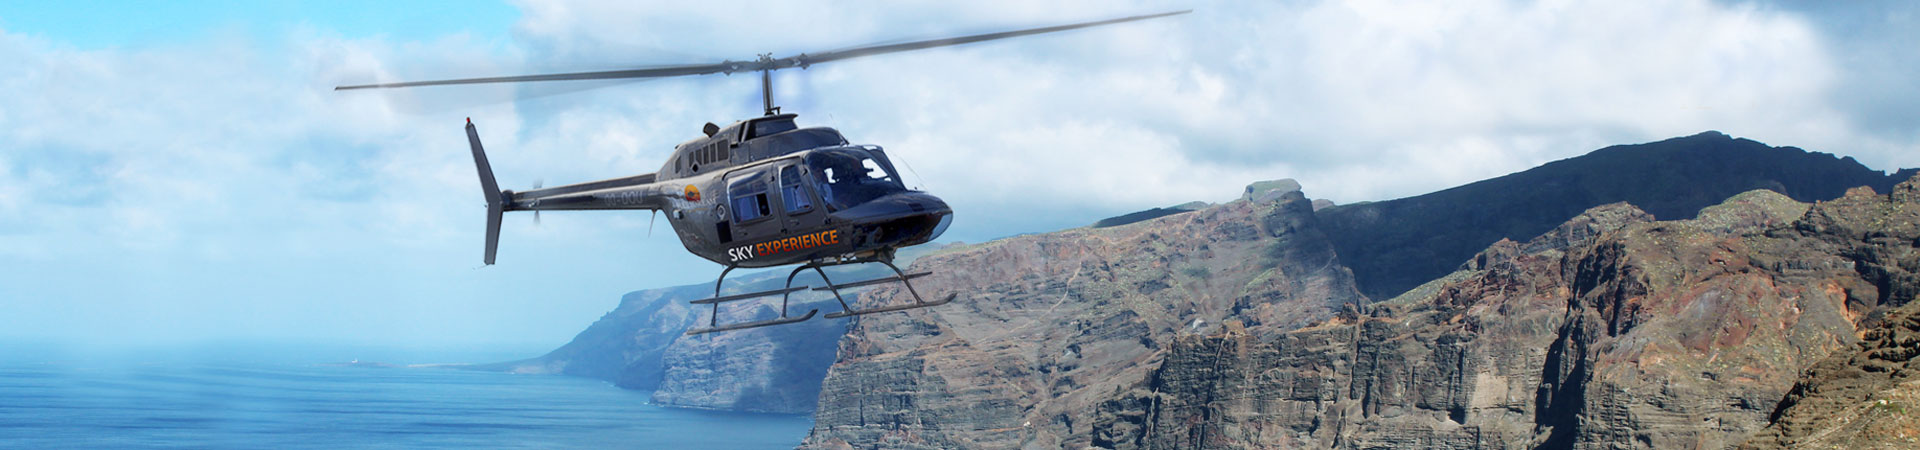 https://www.goodmorningtenerife.com/wp-content/uploads/2018/03/02a_helidream-helicopters-1920x450-1.jpg